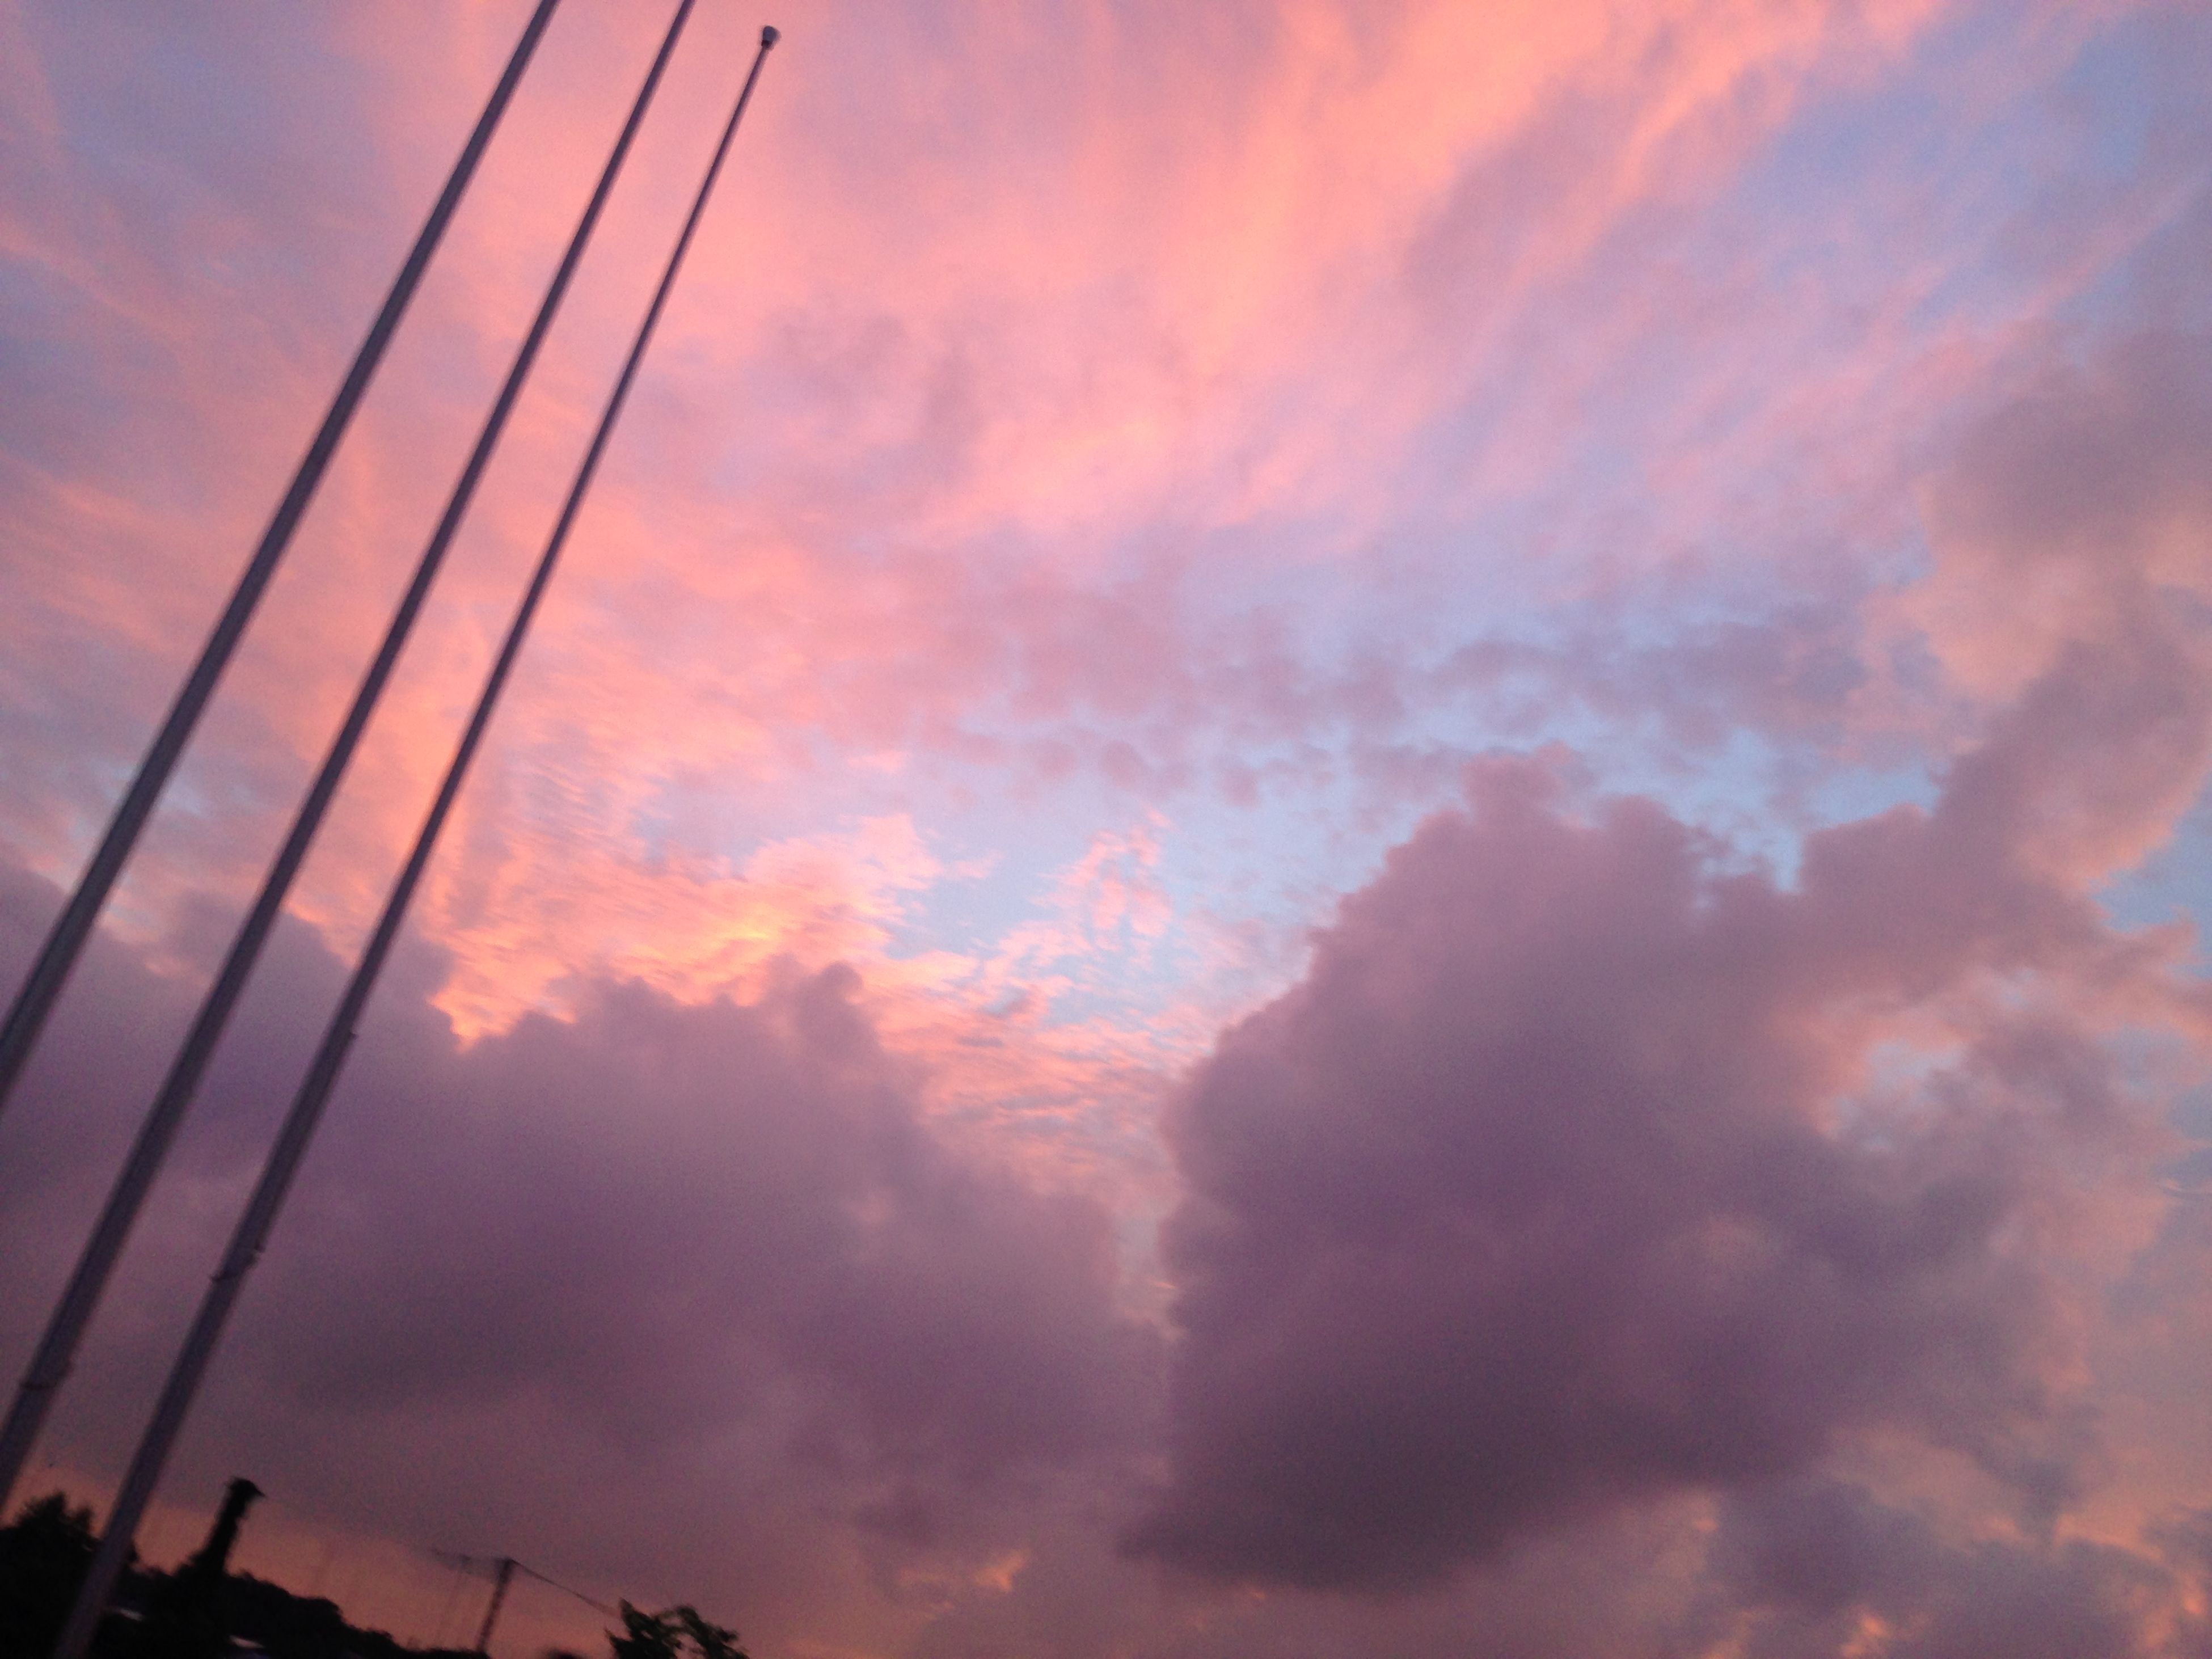 low angle view, sky, sunset, cloud - sky, cloudy, silhouette, beauty in nature, orange color, cloud, scenics, power line, dramatic sky, nature, weather, tranquility, connection, overcast, cloudscape, dusk, electricity